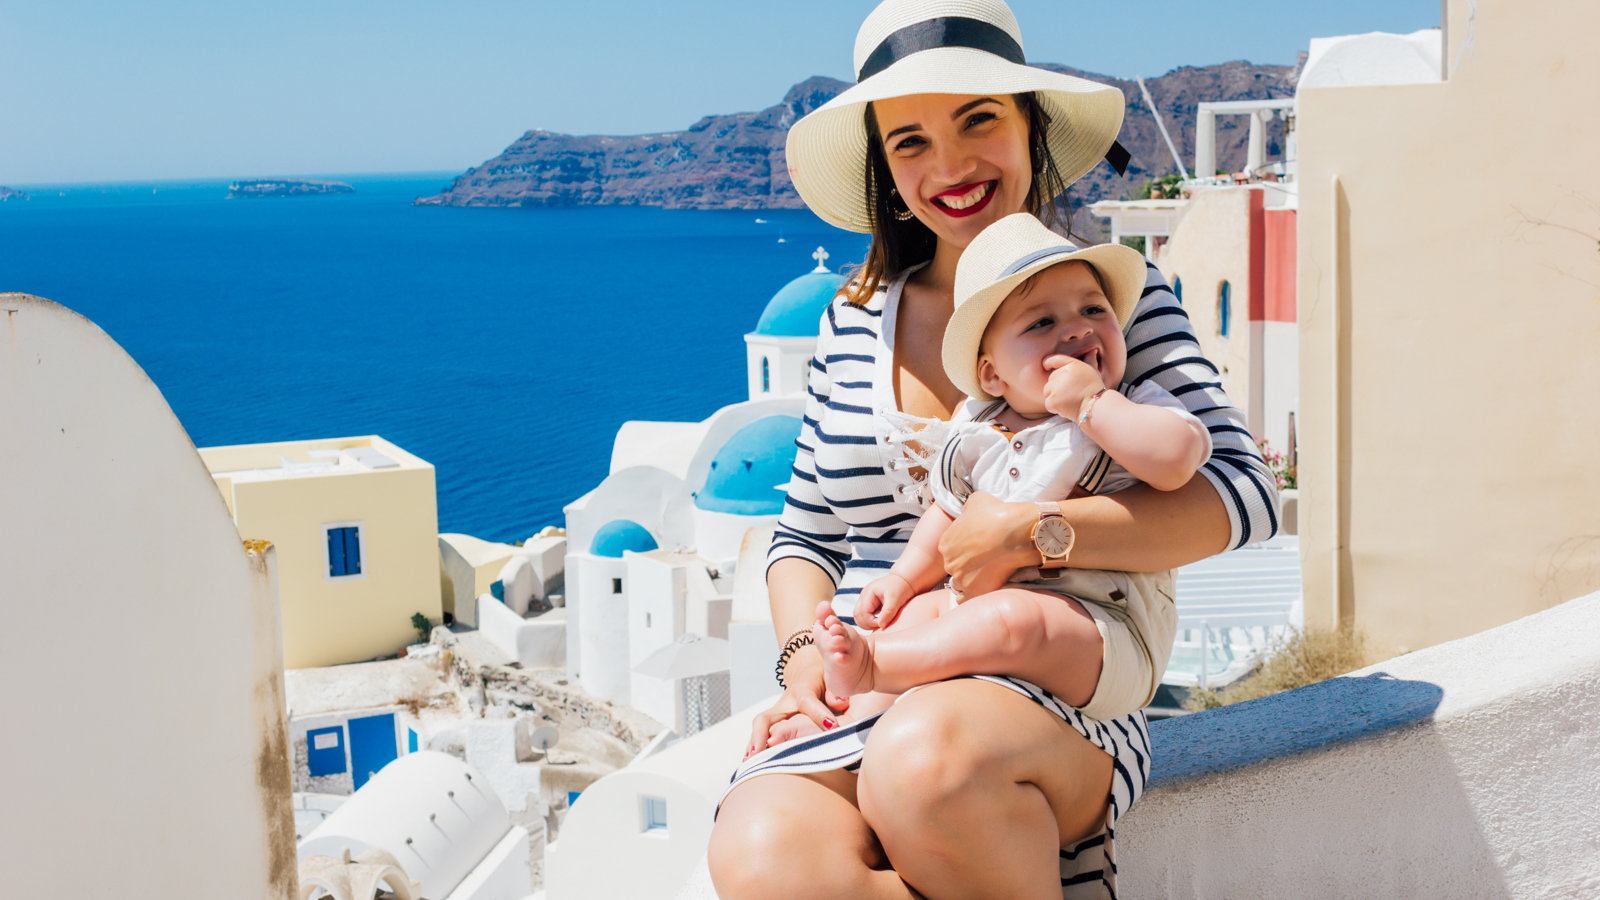 mother and son on vacation in Greece